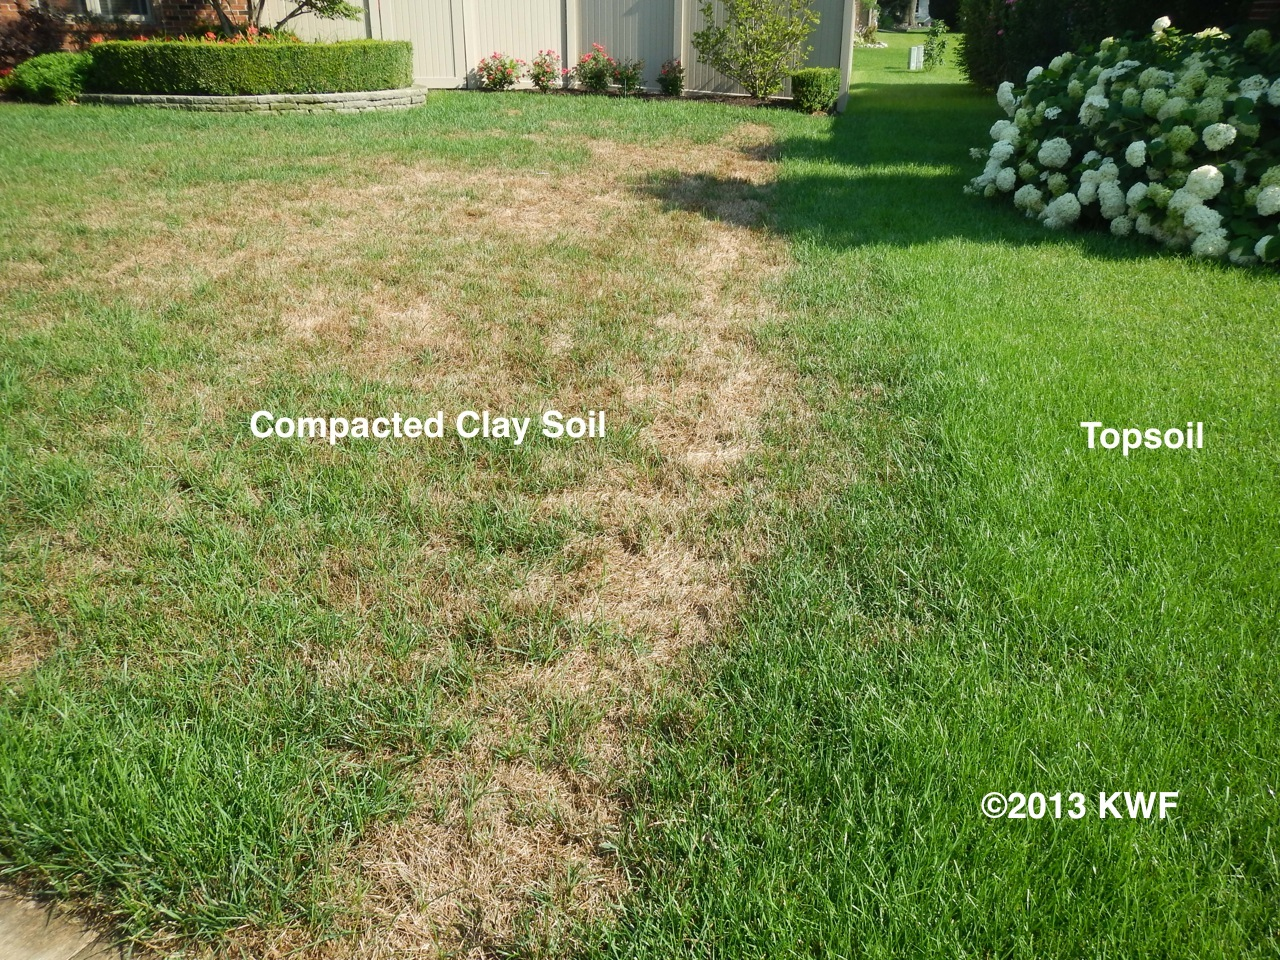 Michigan state university the secret to good lawns good soil for Lawn topsoil